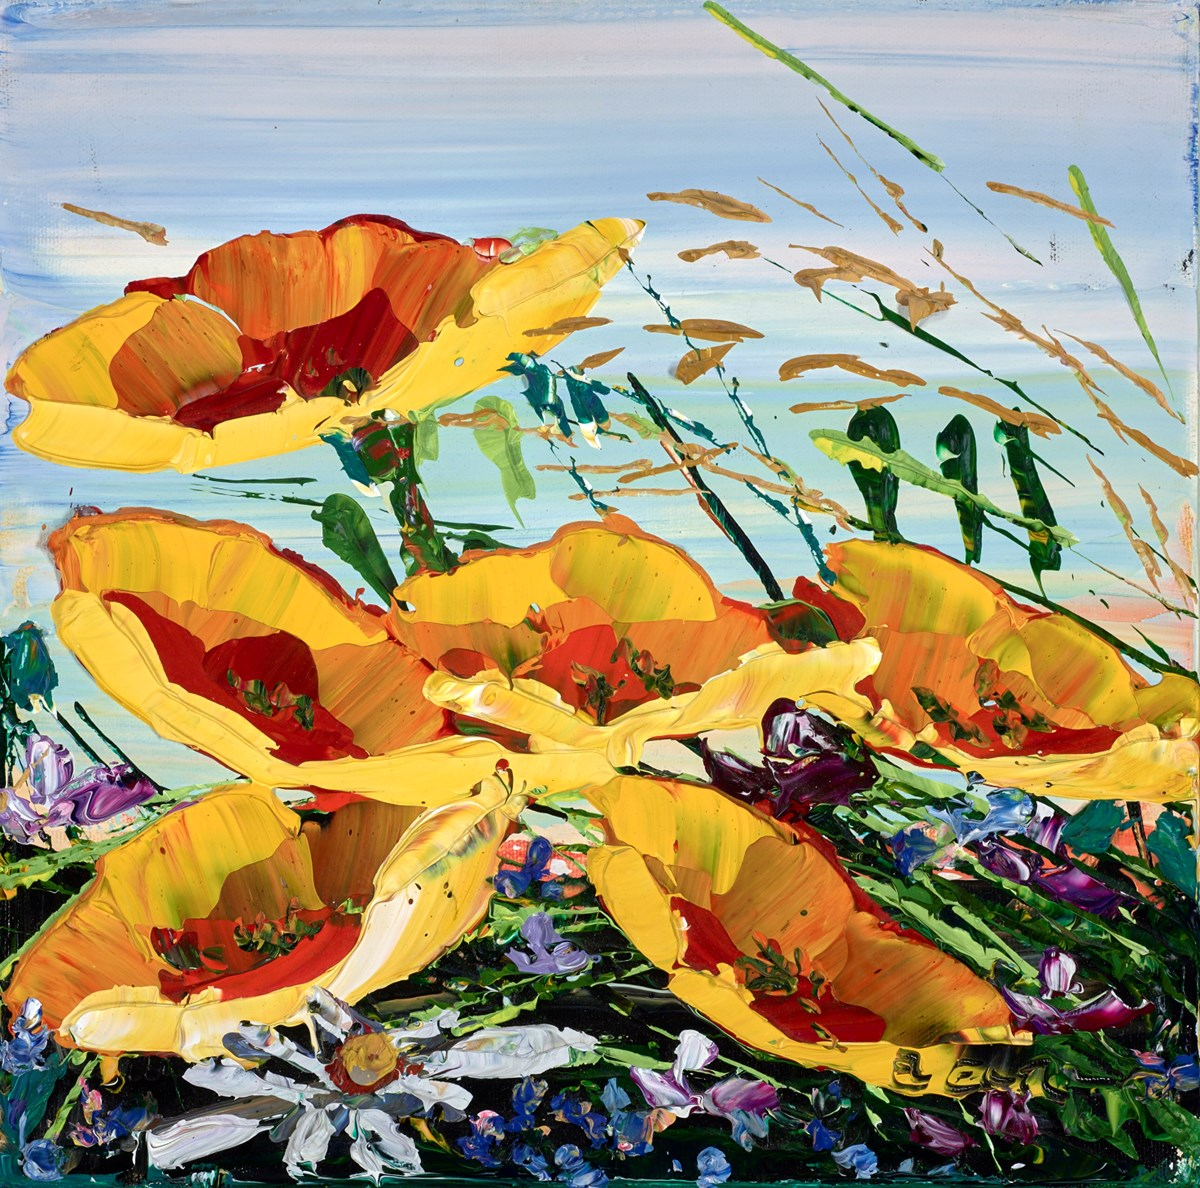 Wildflowers  by maya eventov -  sized 12x12 inches. Available from Whitewall Galleries